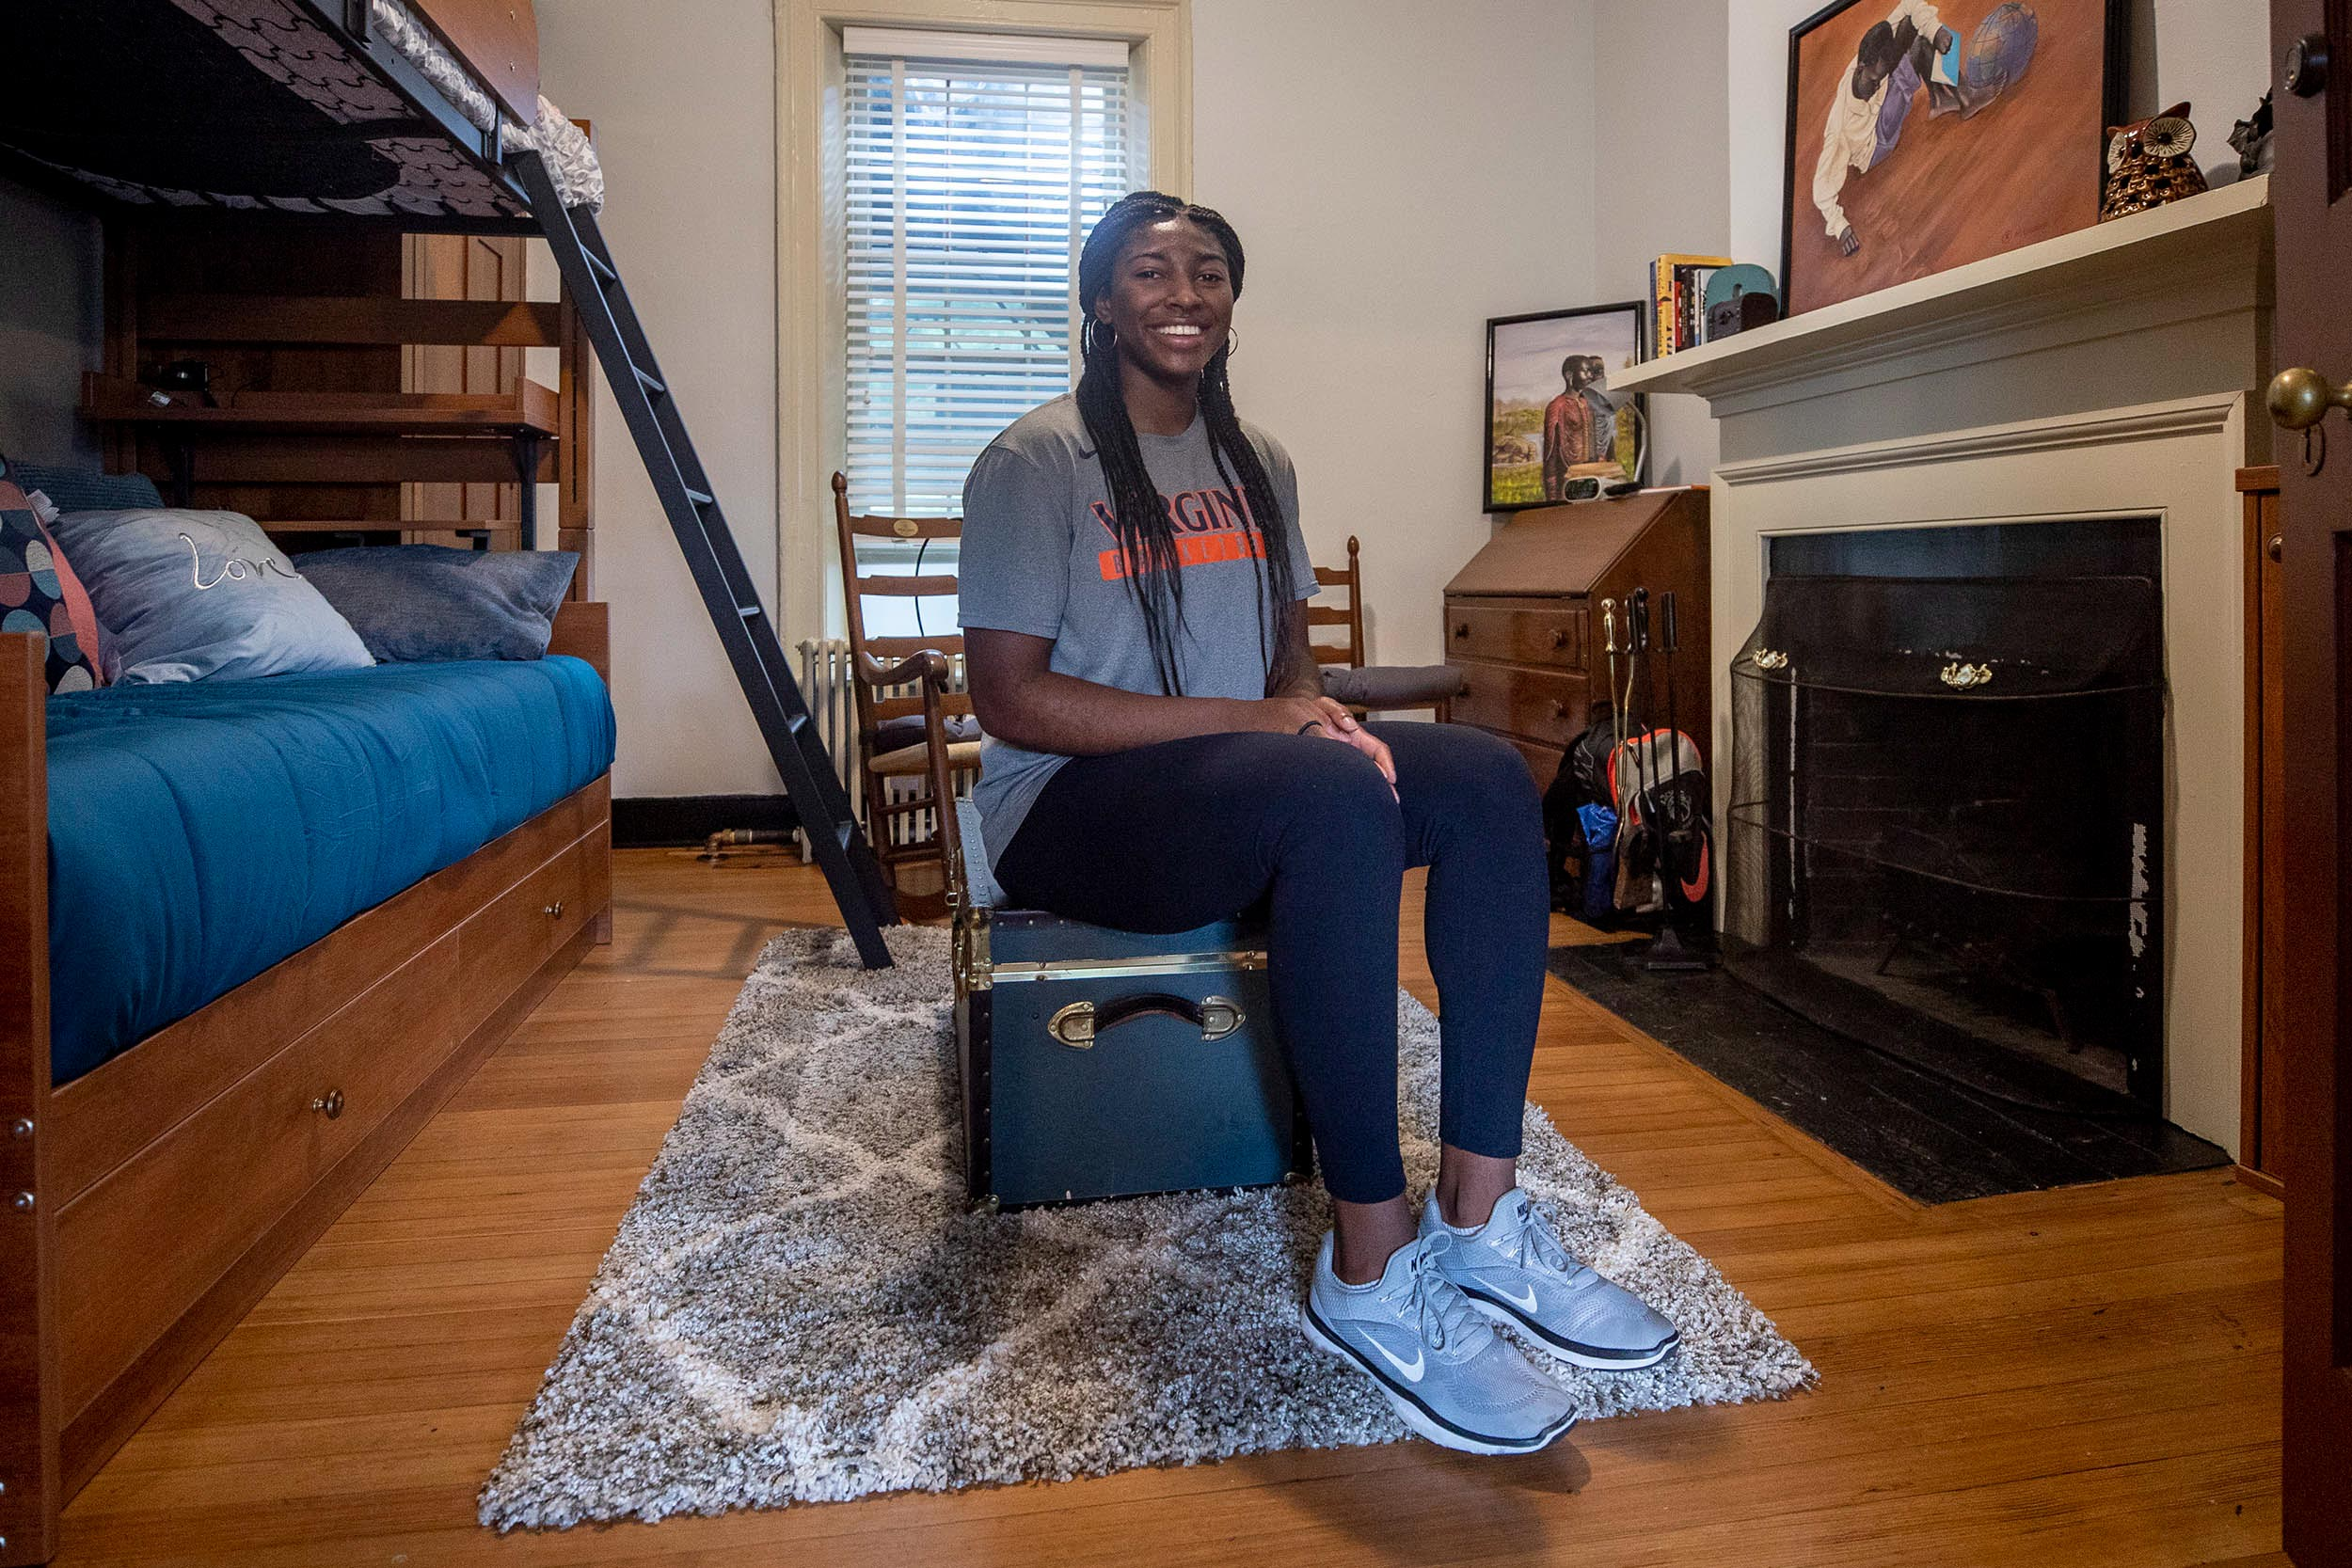 Women's basketball player Jocelyn Willoughby, a rising senior from New Jersey, averaged a team-leading 14.8 points and 8.2 rebounds this past season.